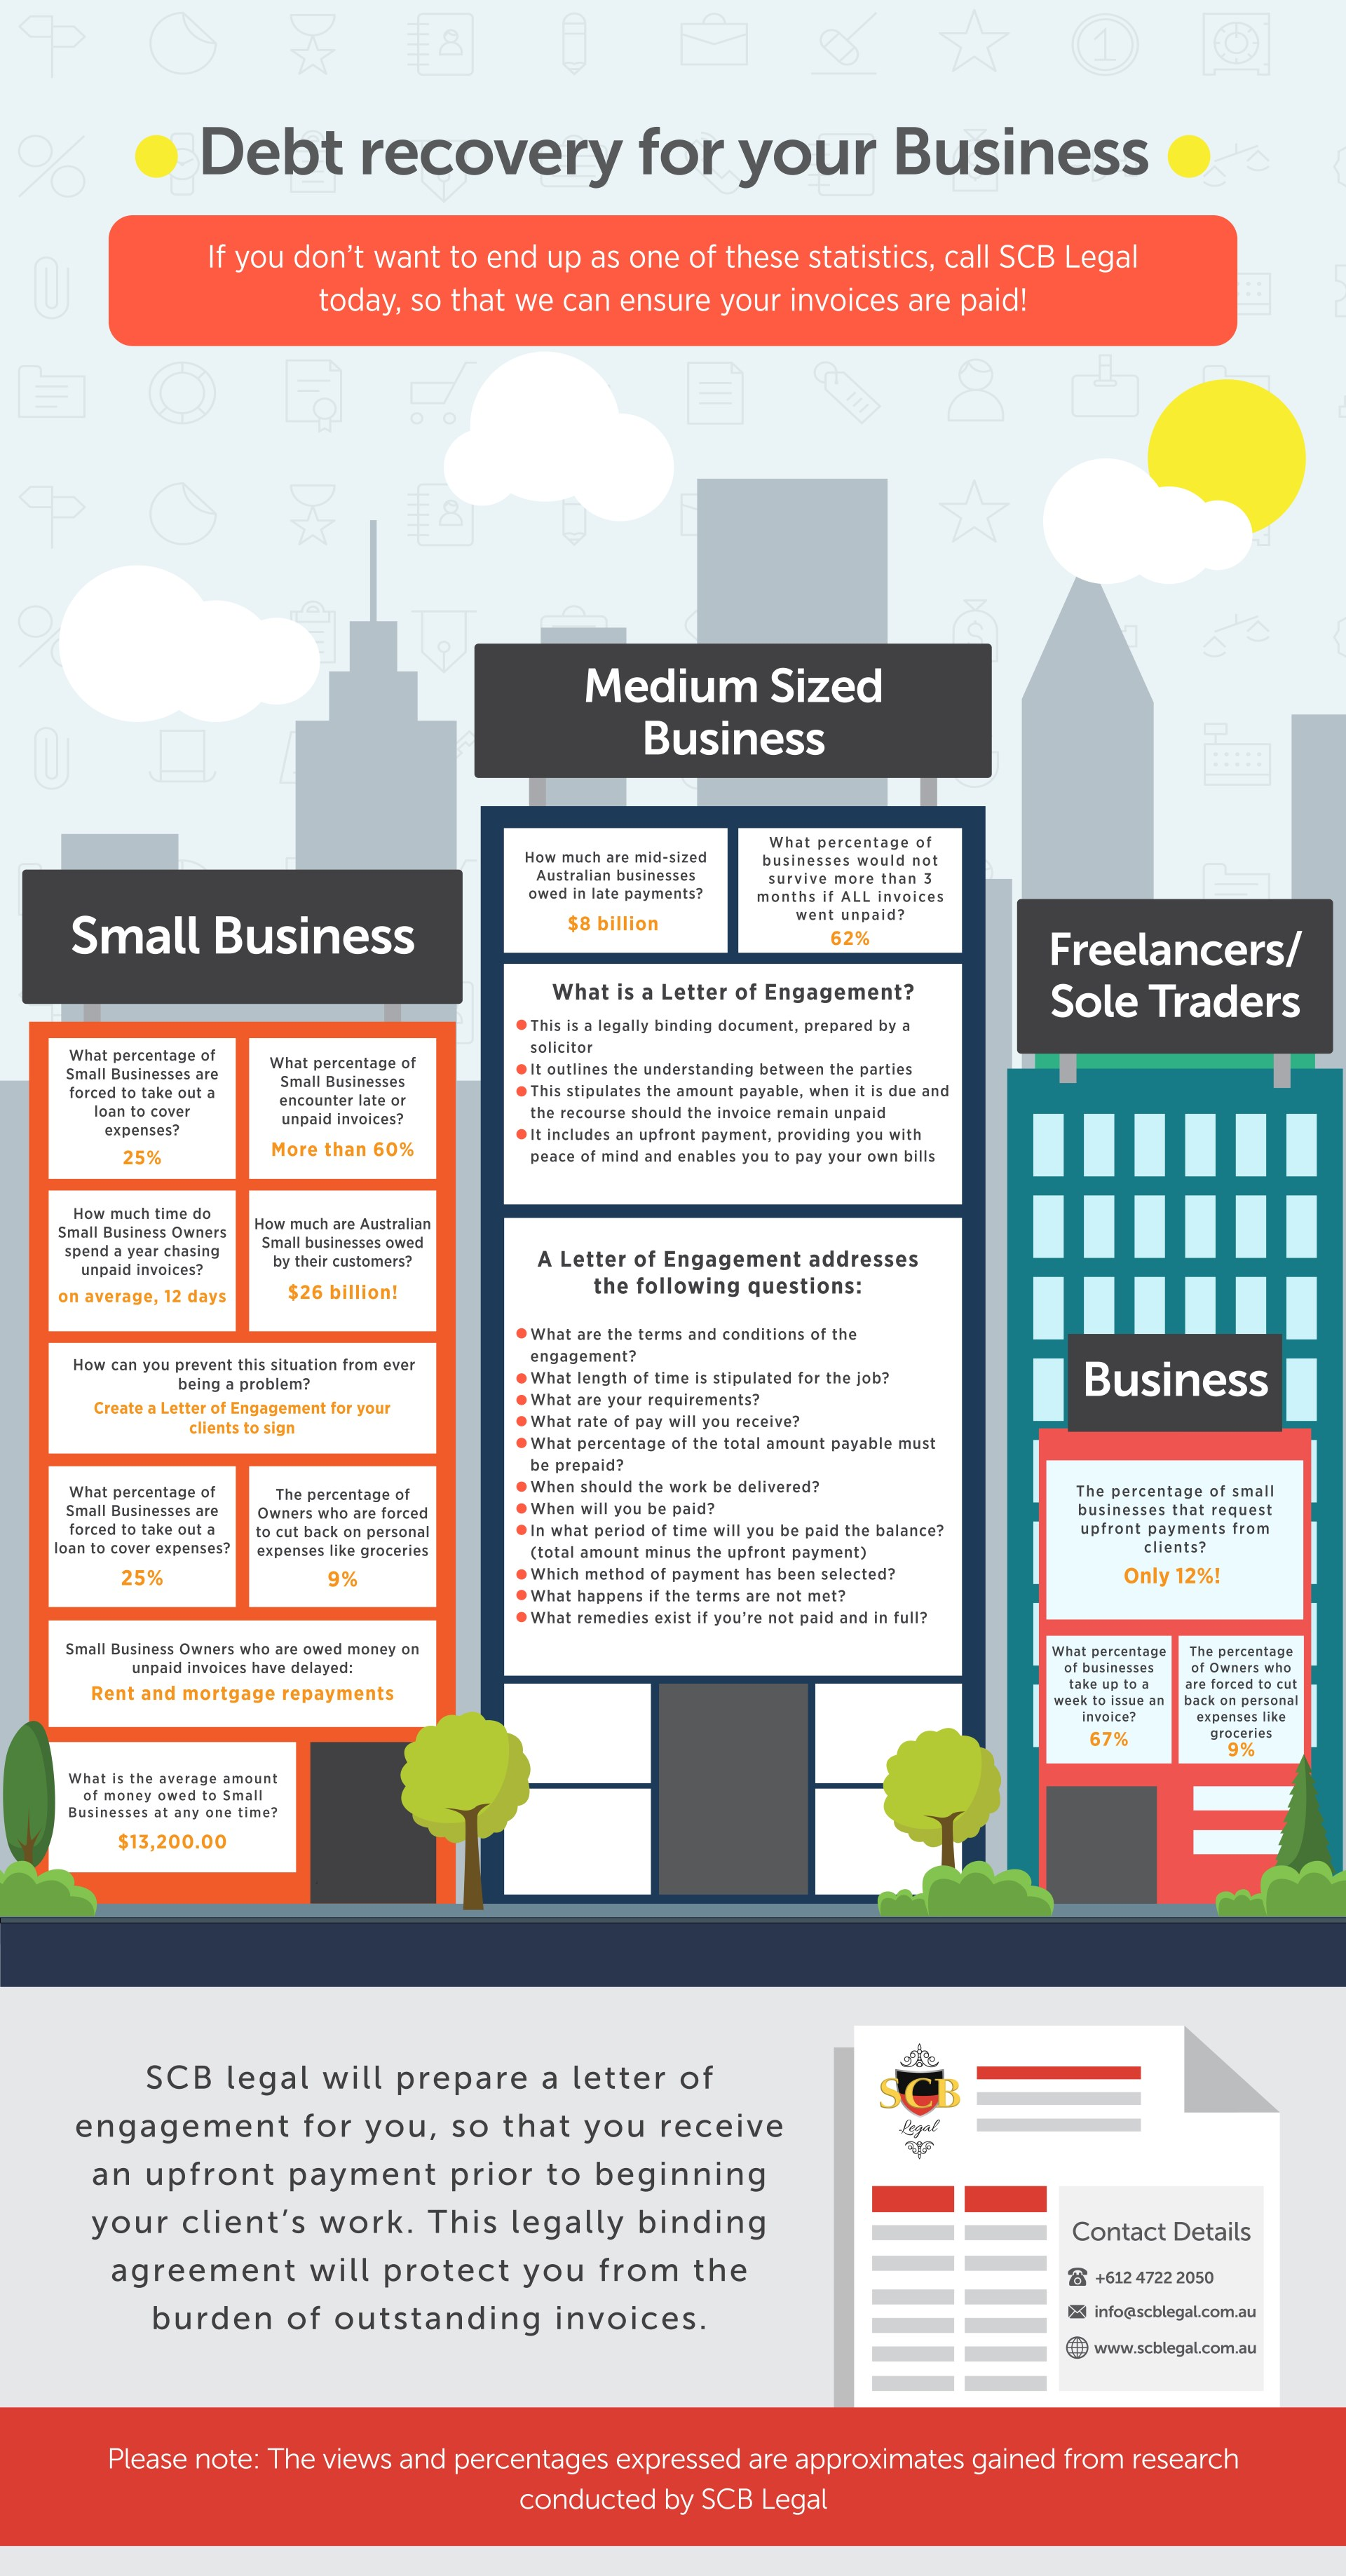 Debt recovery solicitors' infographic about the debt recovery process